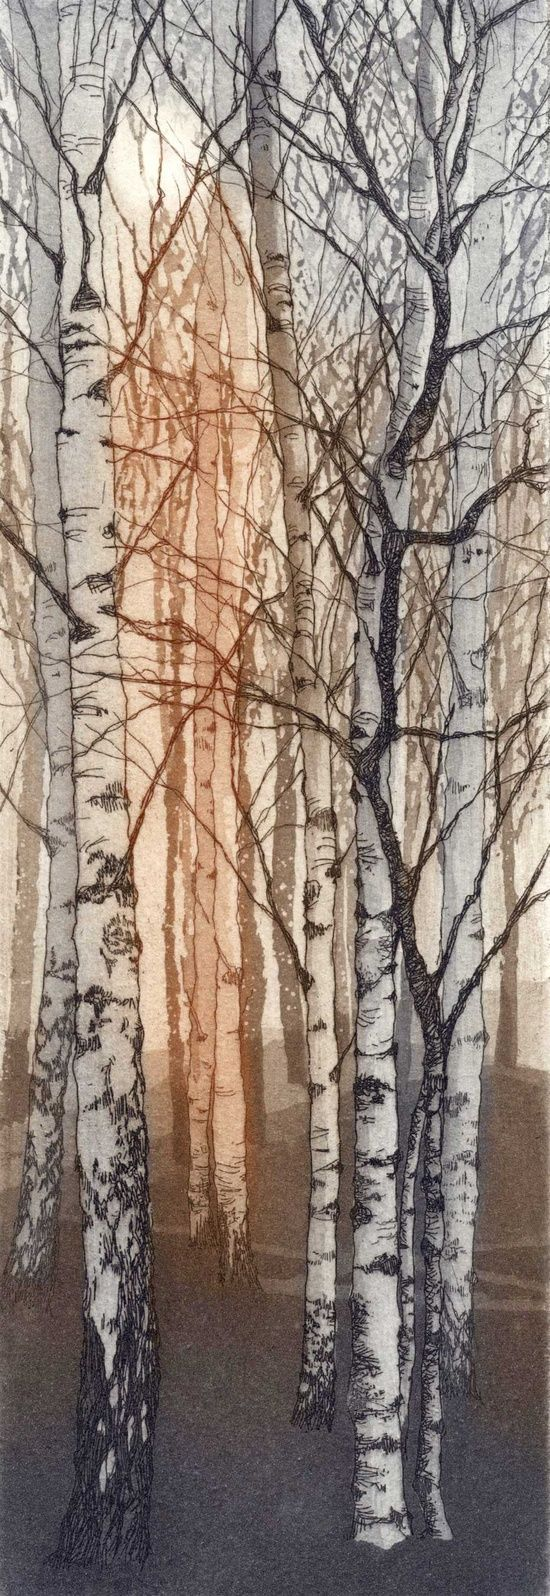 Chrissy Norman - Etchings of Suffolk - Birch Trees. I love this piece of artwork!